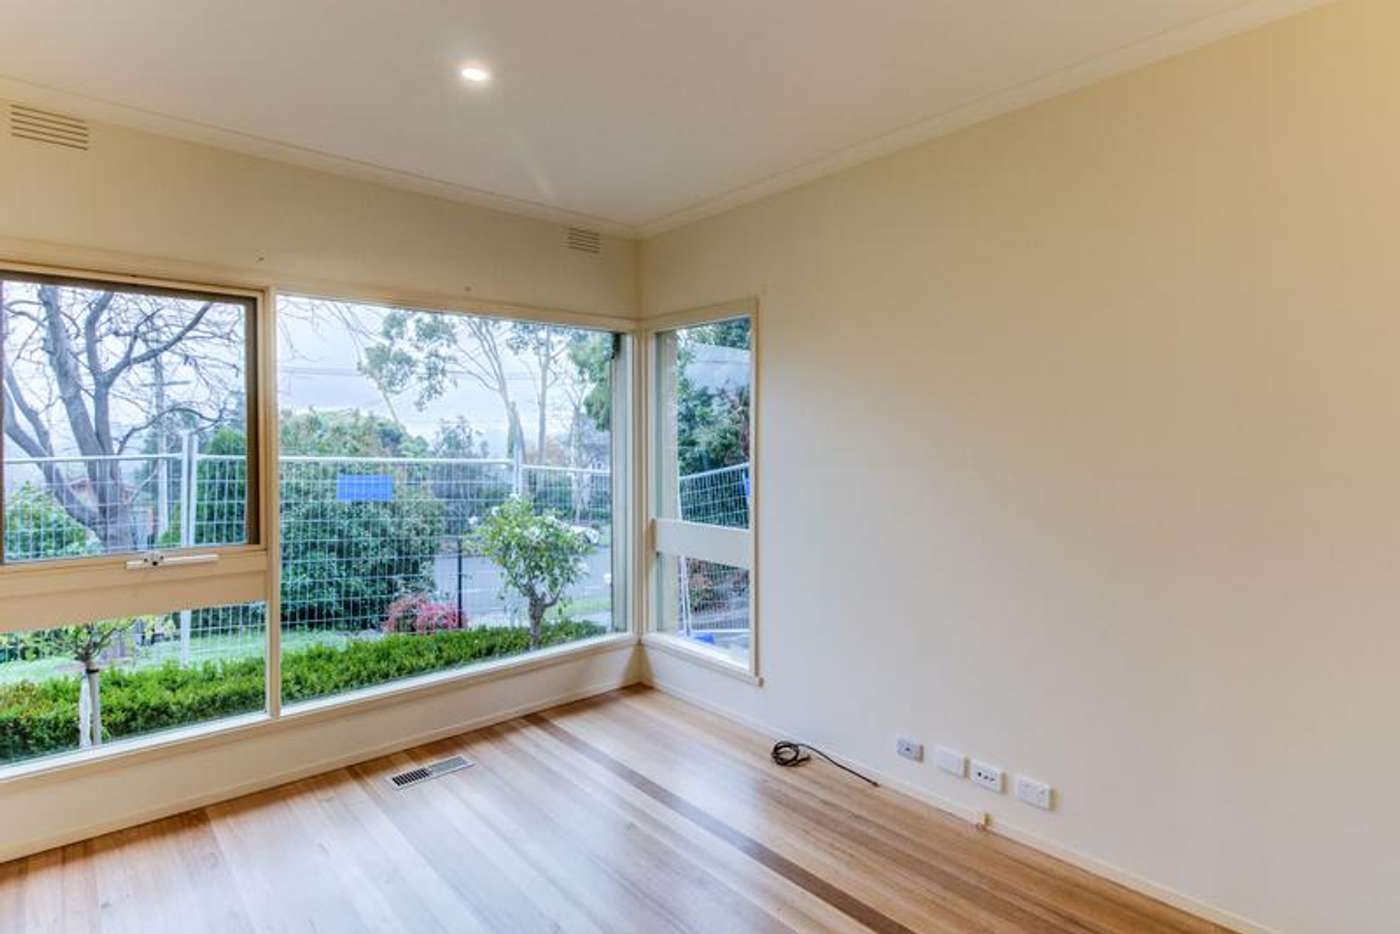 Fifth view of Homely house listing, 1 Alburnum Crescent, Templestowe Lower VIC 3107